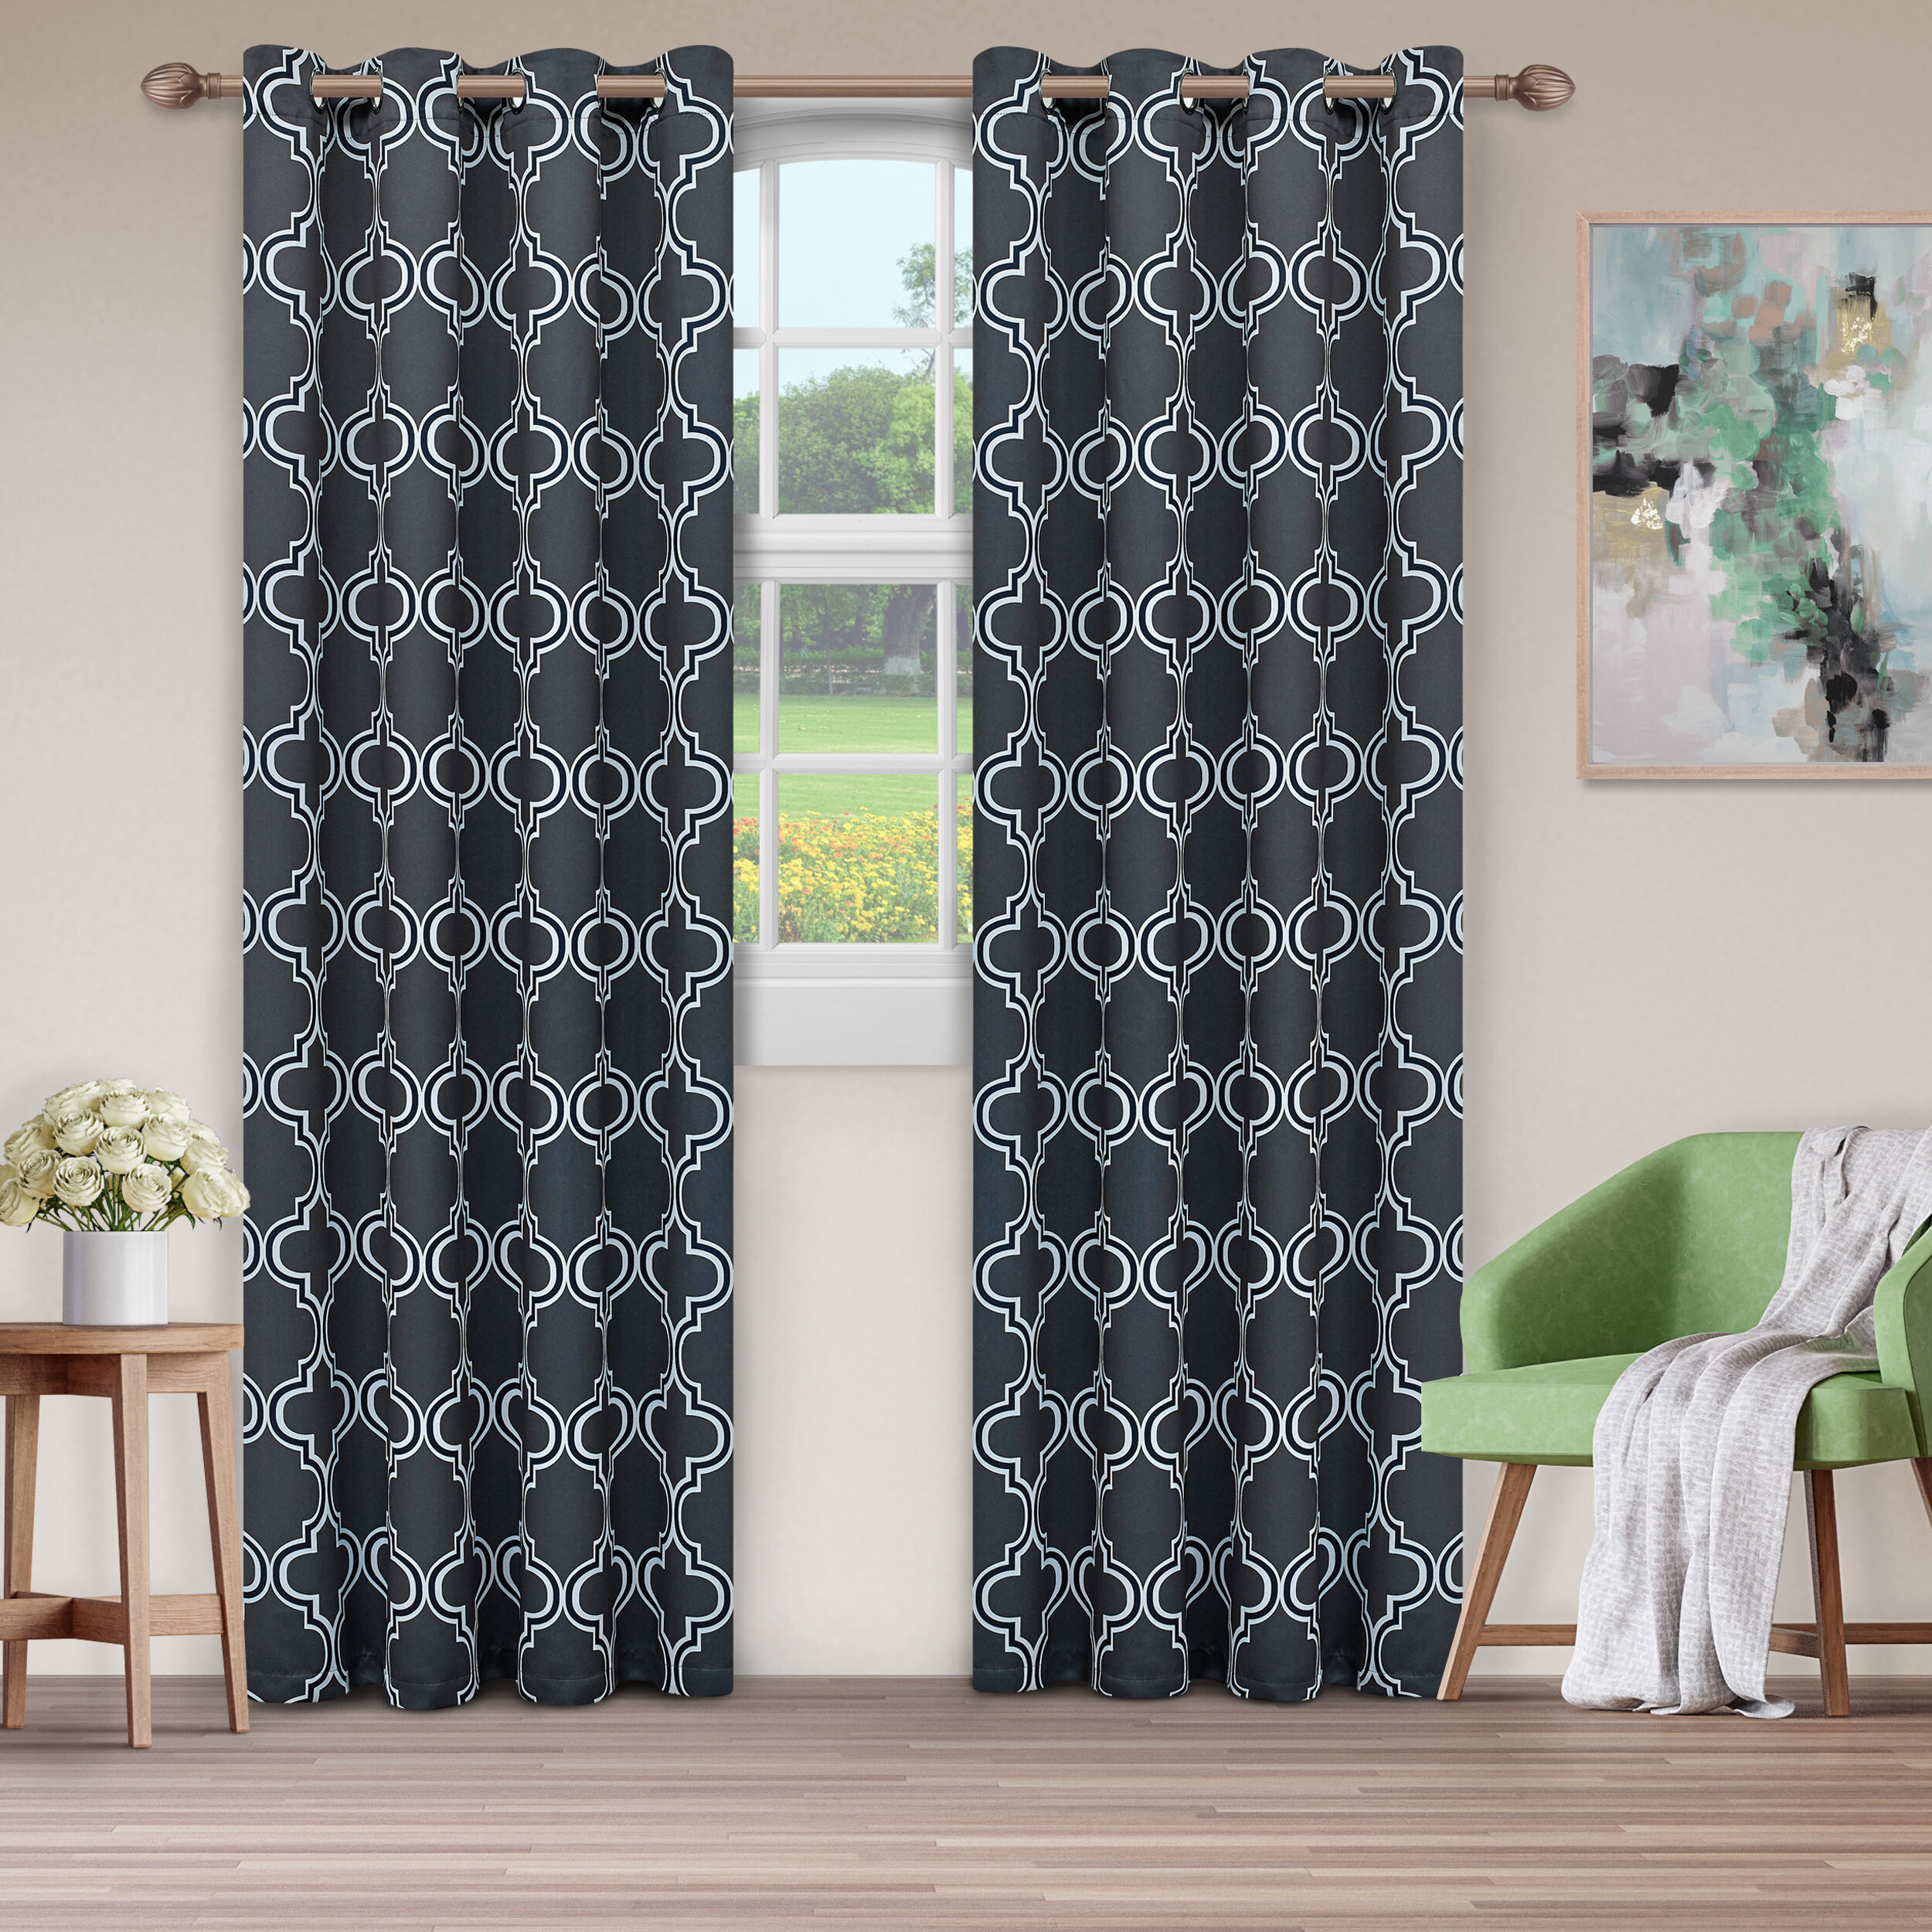 Kinlaw Geometric Blackout Thermal Grommet Panel Pair Regarding Insulated Blackout Grommet Window Curtain Panel Pairs (View 14 of 20)